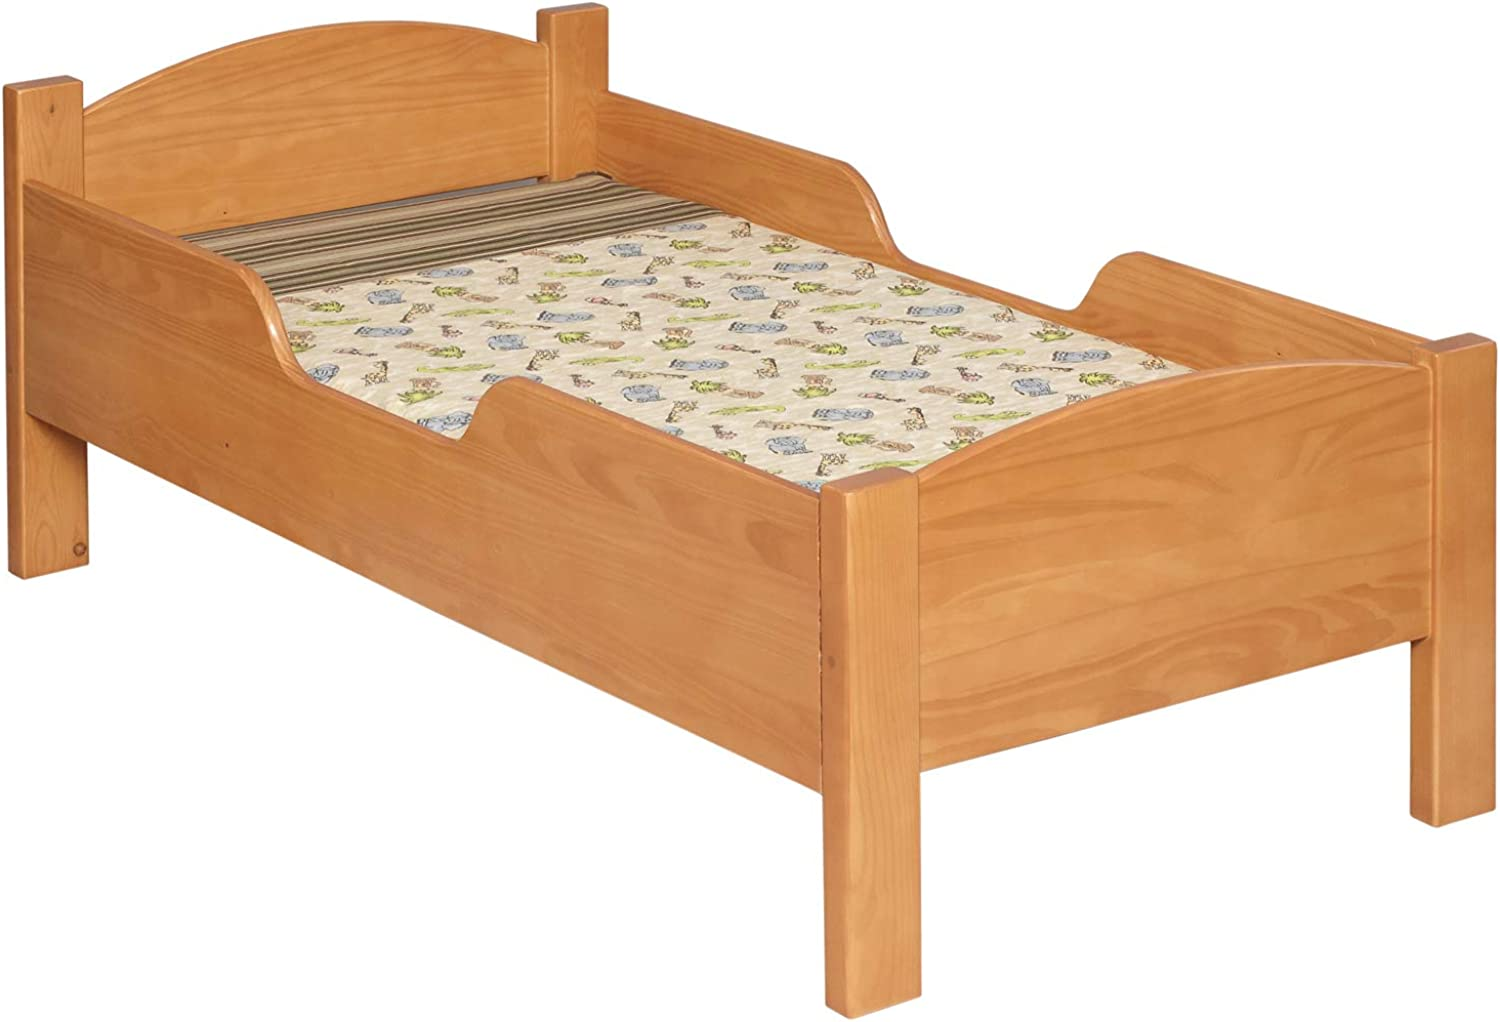 Little colorado 088ESPNC Traditional Toddler Bed, Espresso